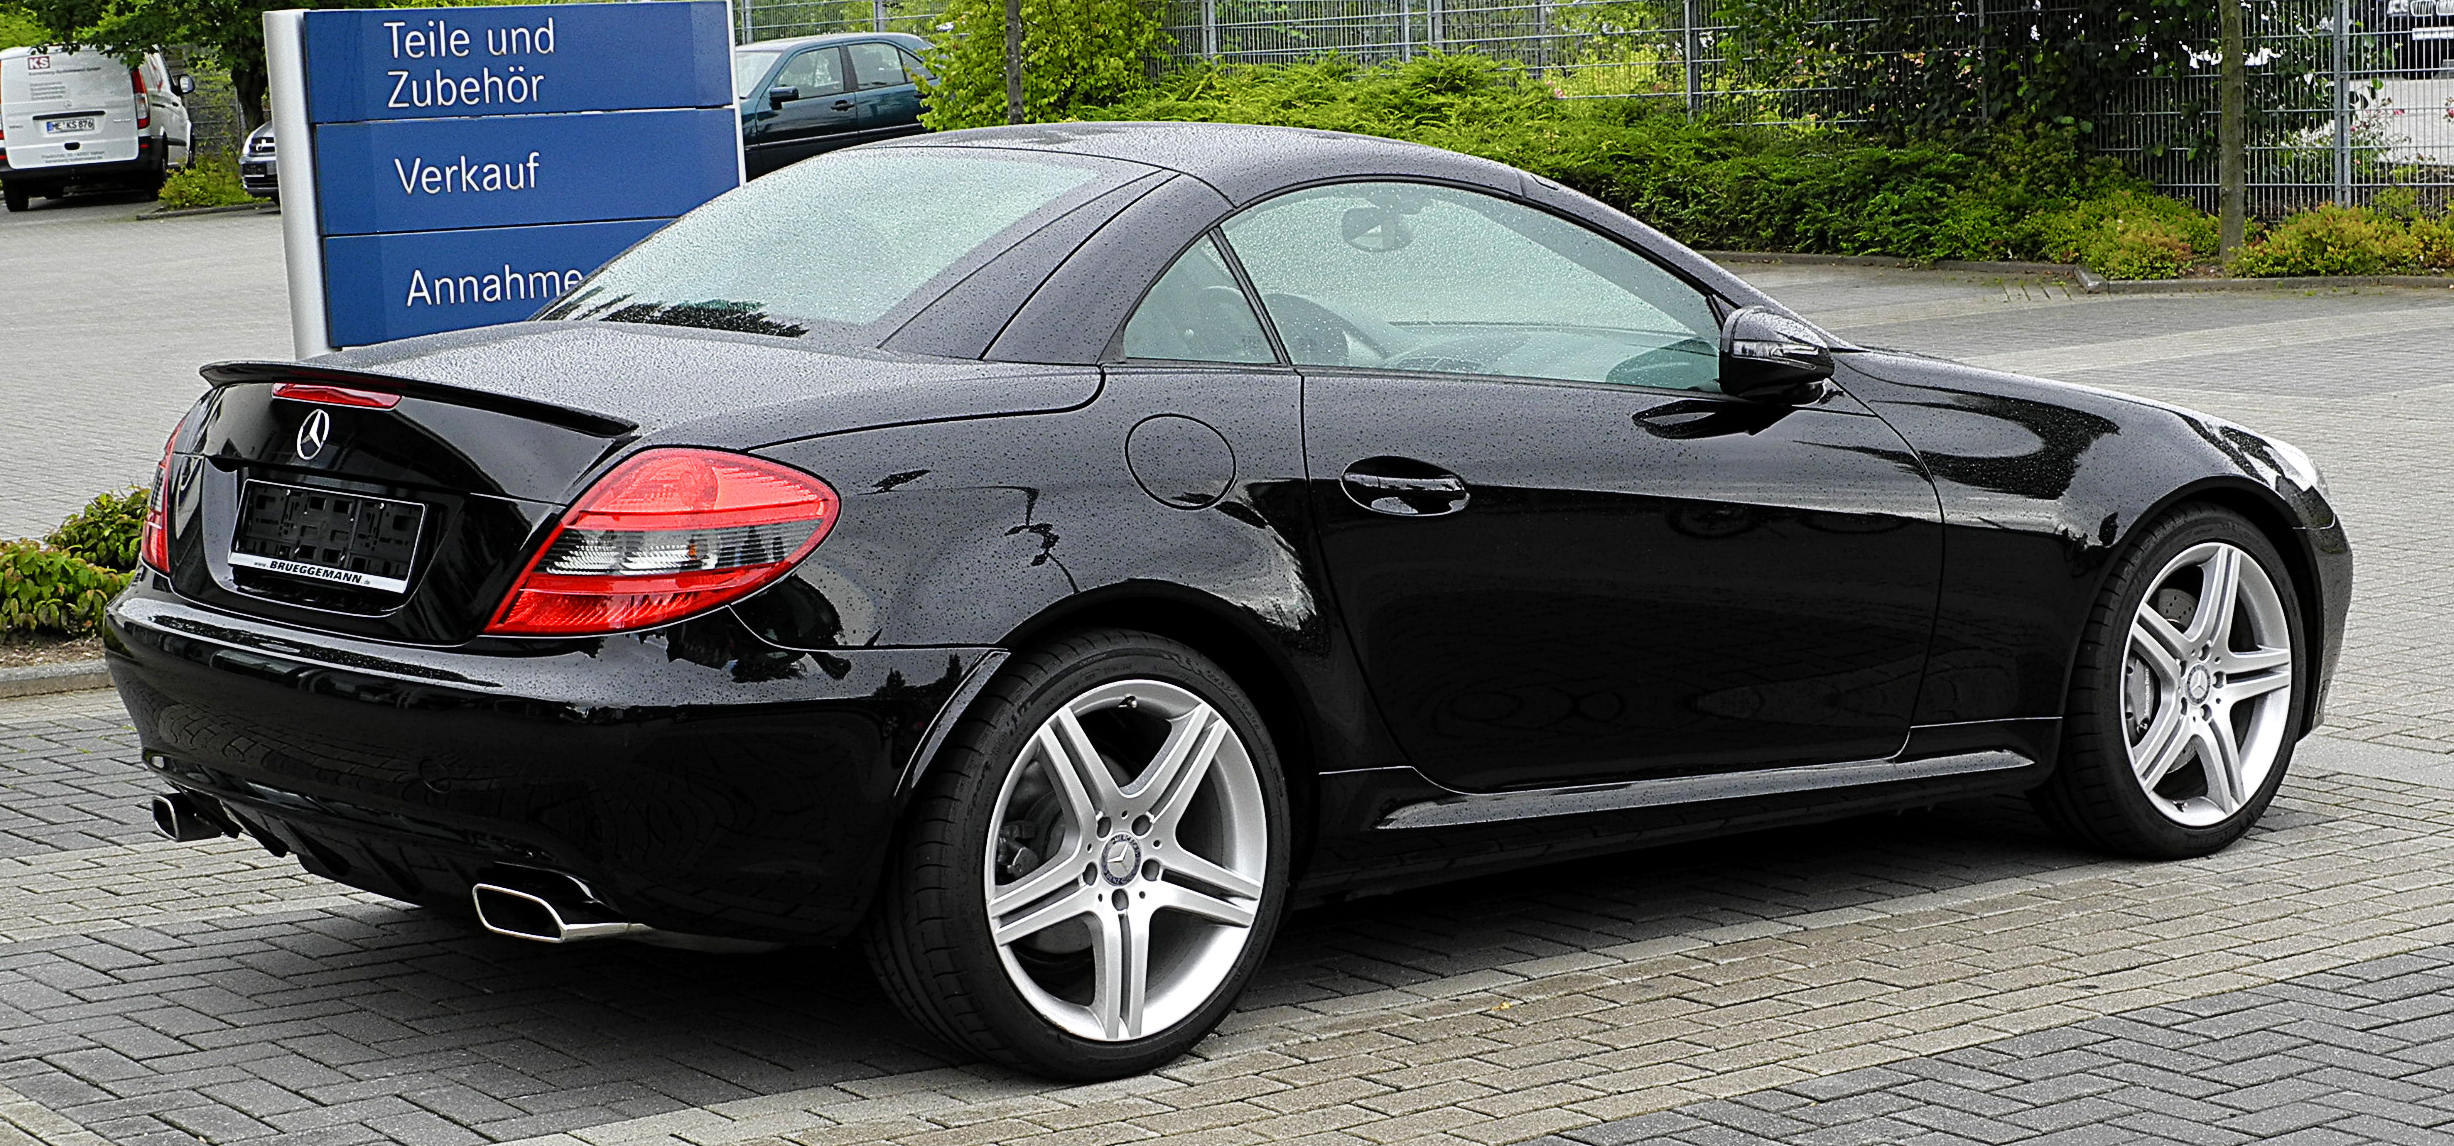 mercedes benz slk 200 kompressor r 171 facelift heckansicht 23 juli 2011 mettmann. Black Bedroom Furniture Sets. Home Design Ideas